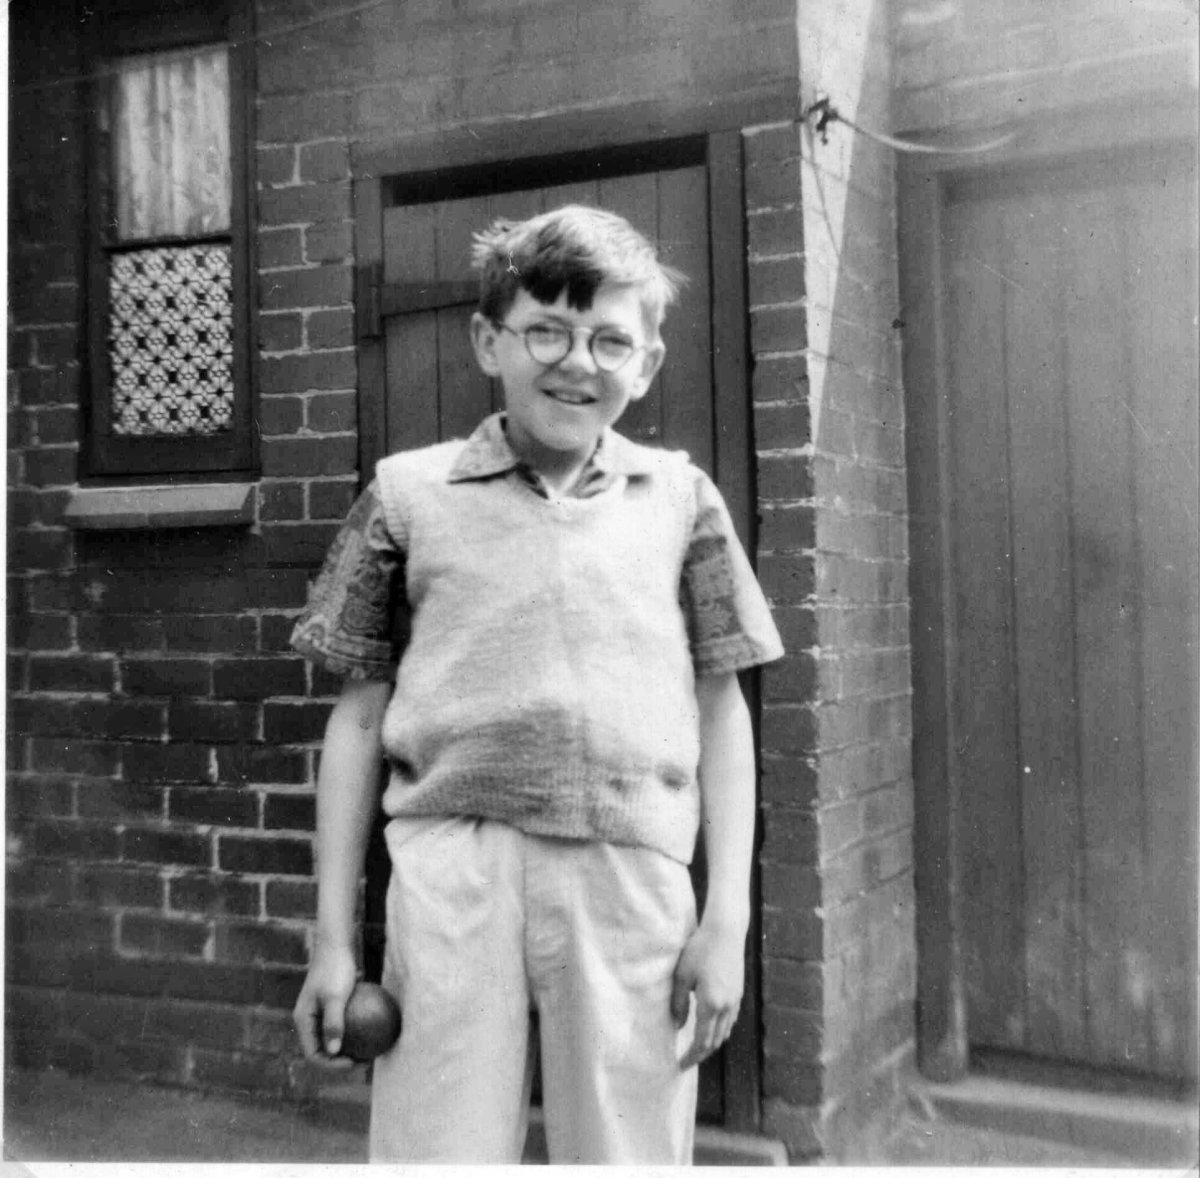 My brother much younger stood in front of our nextdoor neighbour's coal house and the outside toilet in our shared back yard.